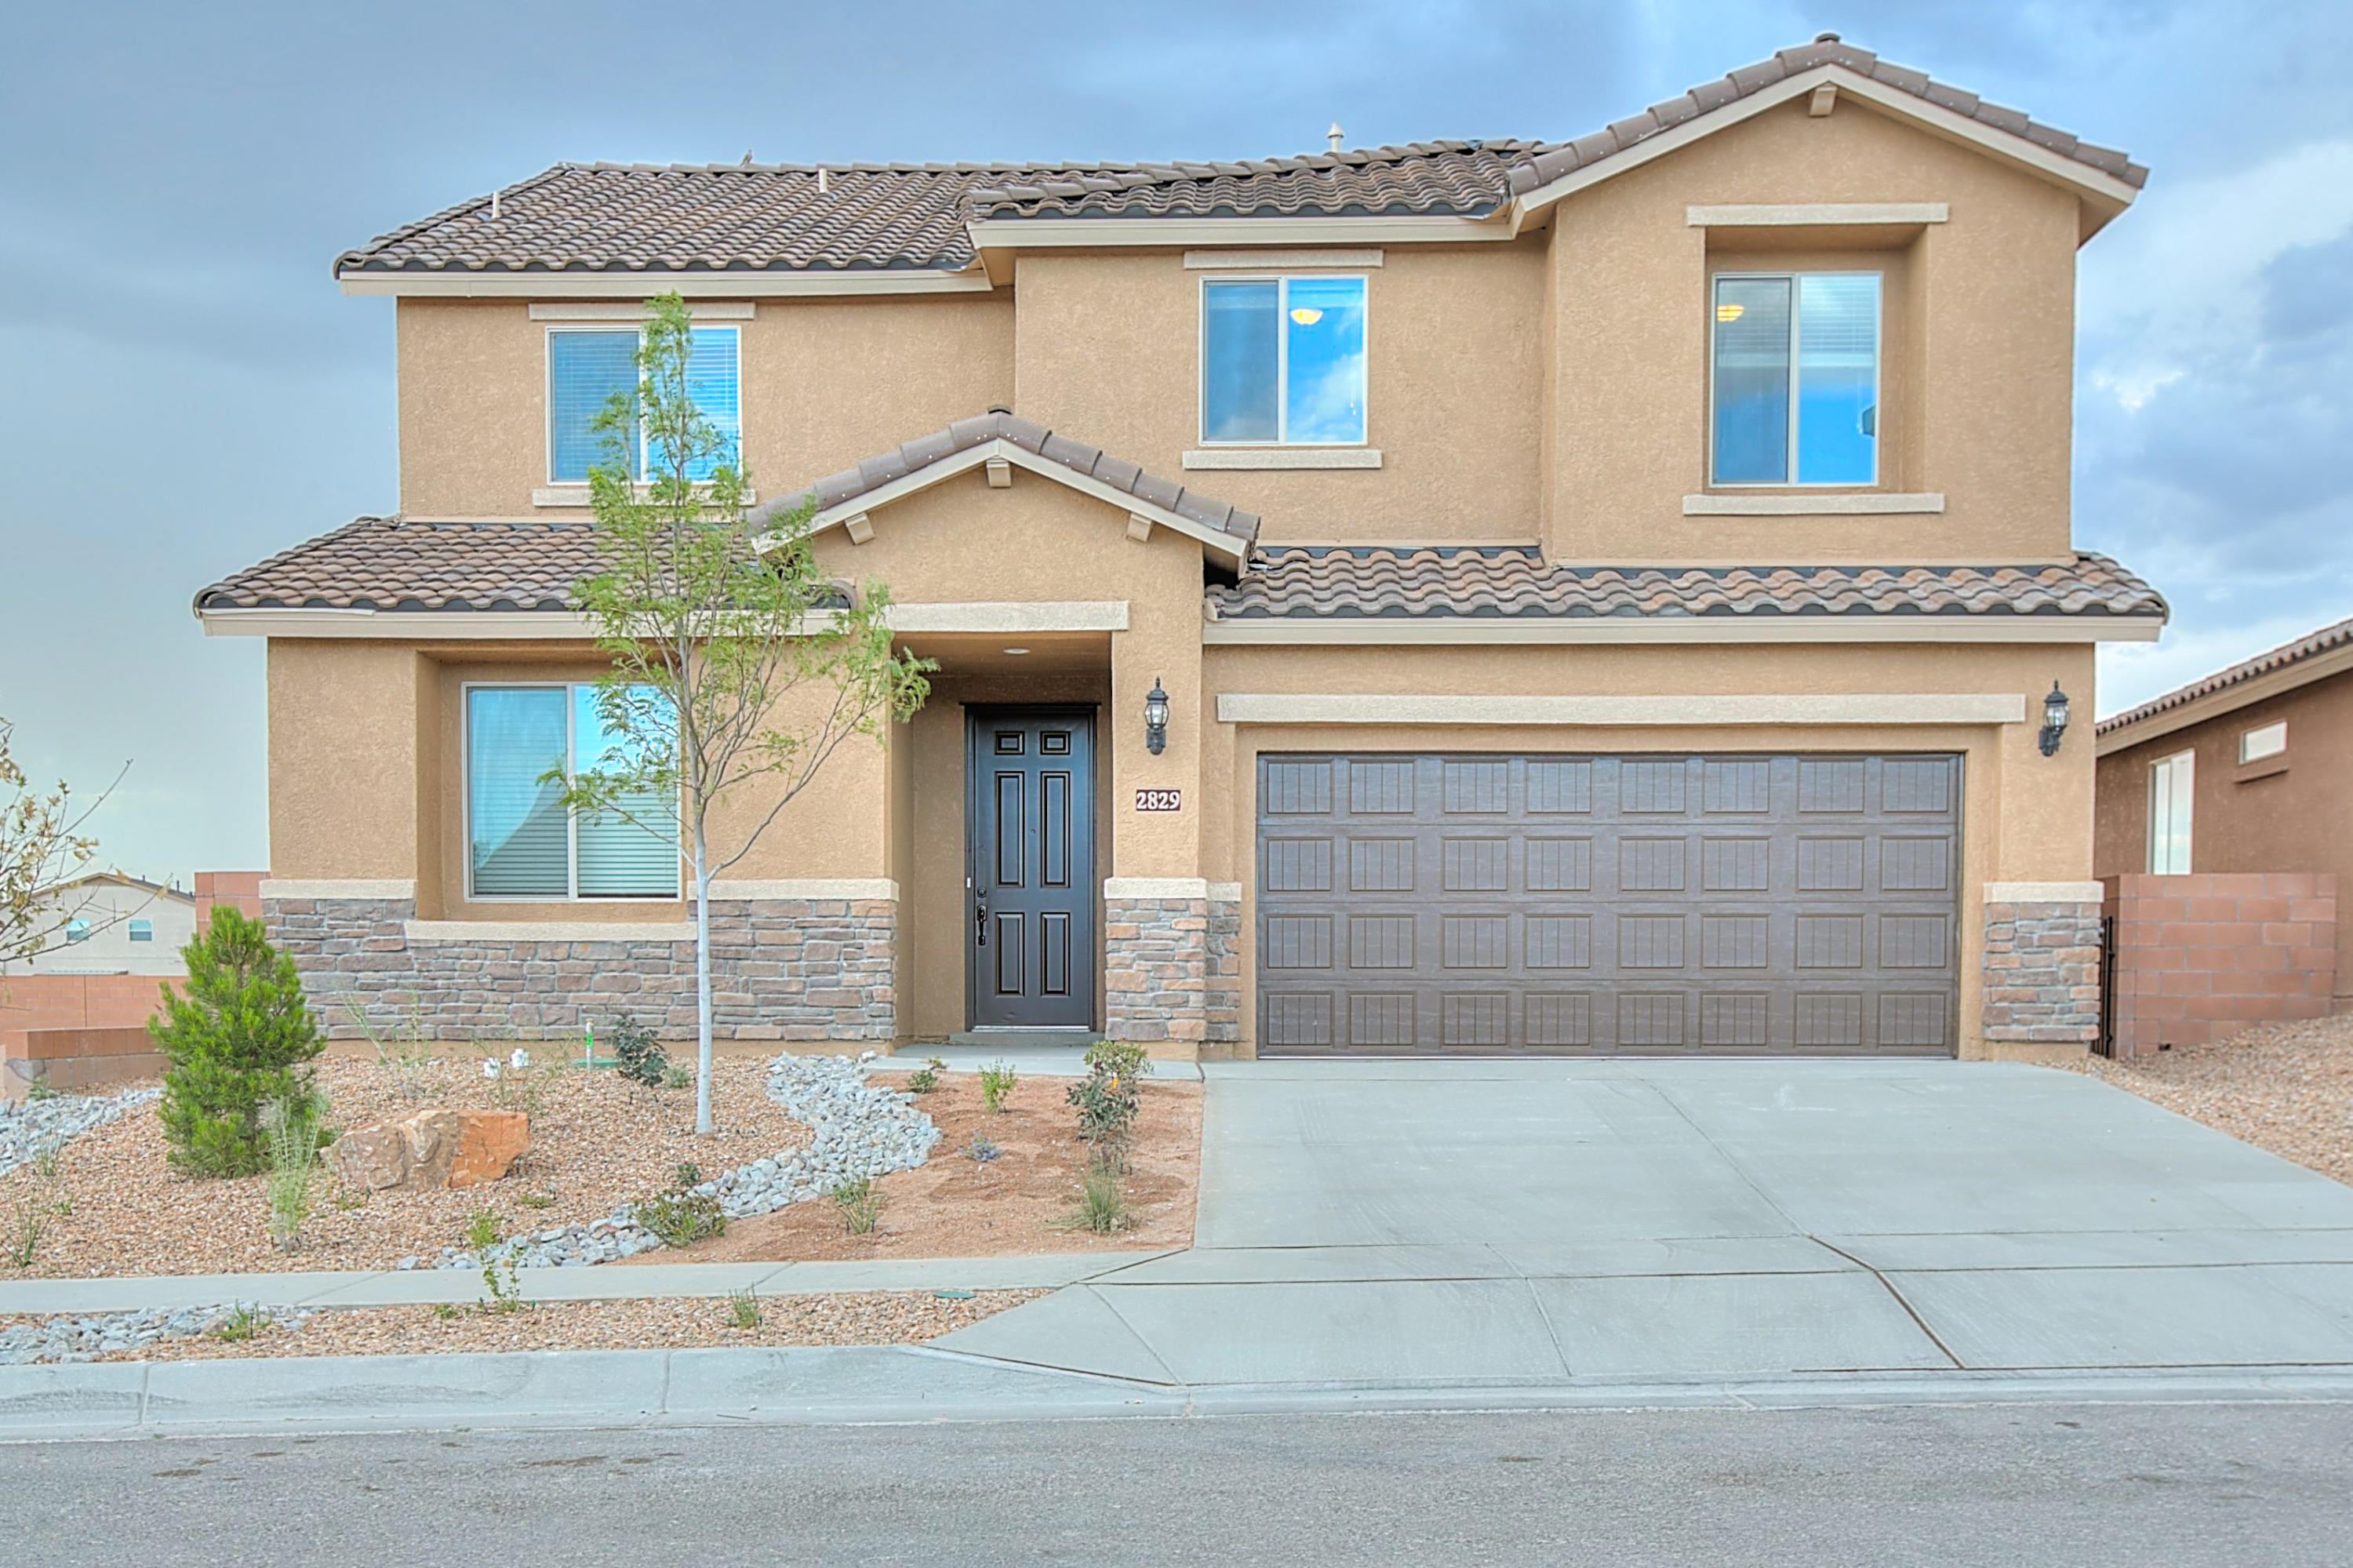 Phenomenal 2-story plan the Fano with soaring ceilings & smart living spaces.  Relaxing Owner's suite with a beautiful Large Tiled shower with seat & huge walk-in closet. Loads of living space upstairs.  Build Green Certified.  Fabulous Warranty!  Completion July 2021. Brand new, never lived in Pulte home. Enjoy brand new appliances, new carpet, new A/C, new tank-less hot water heater, and so much more!